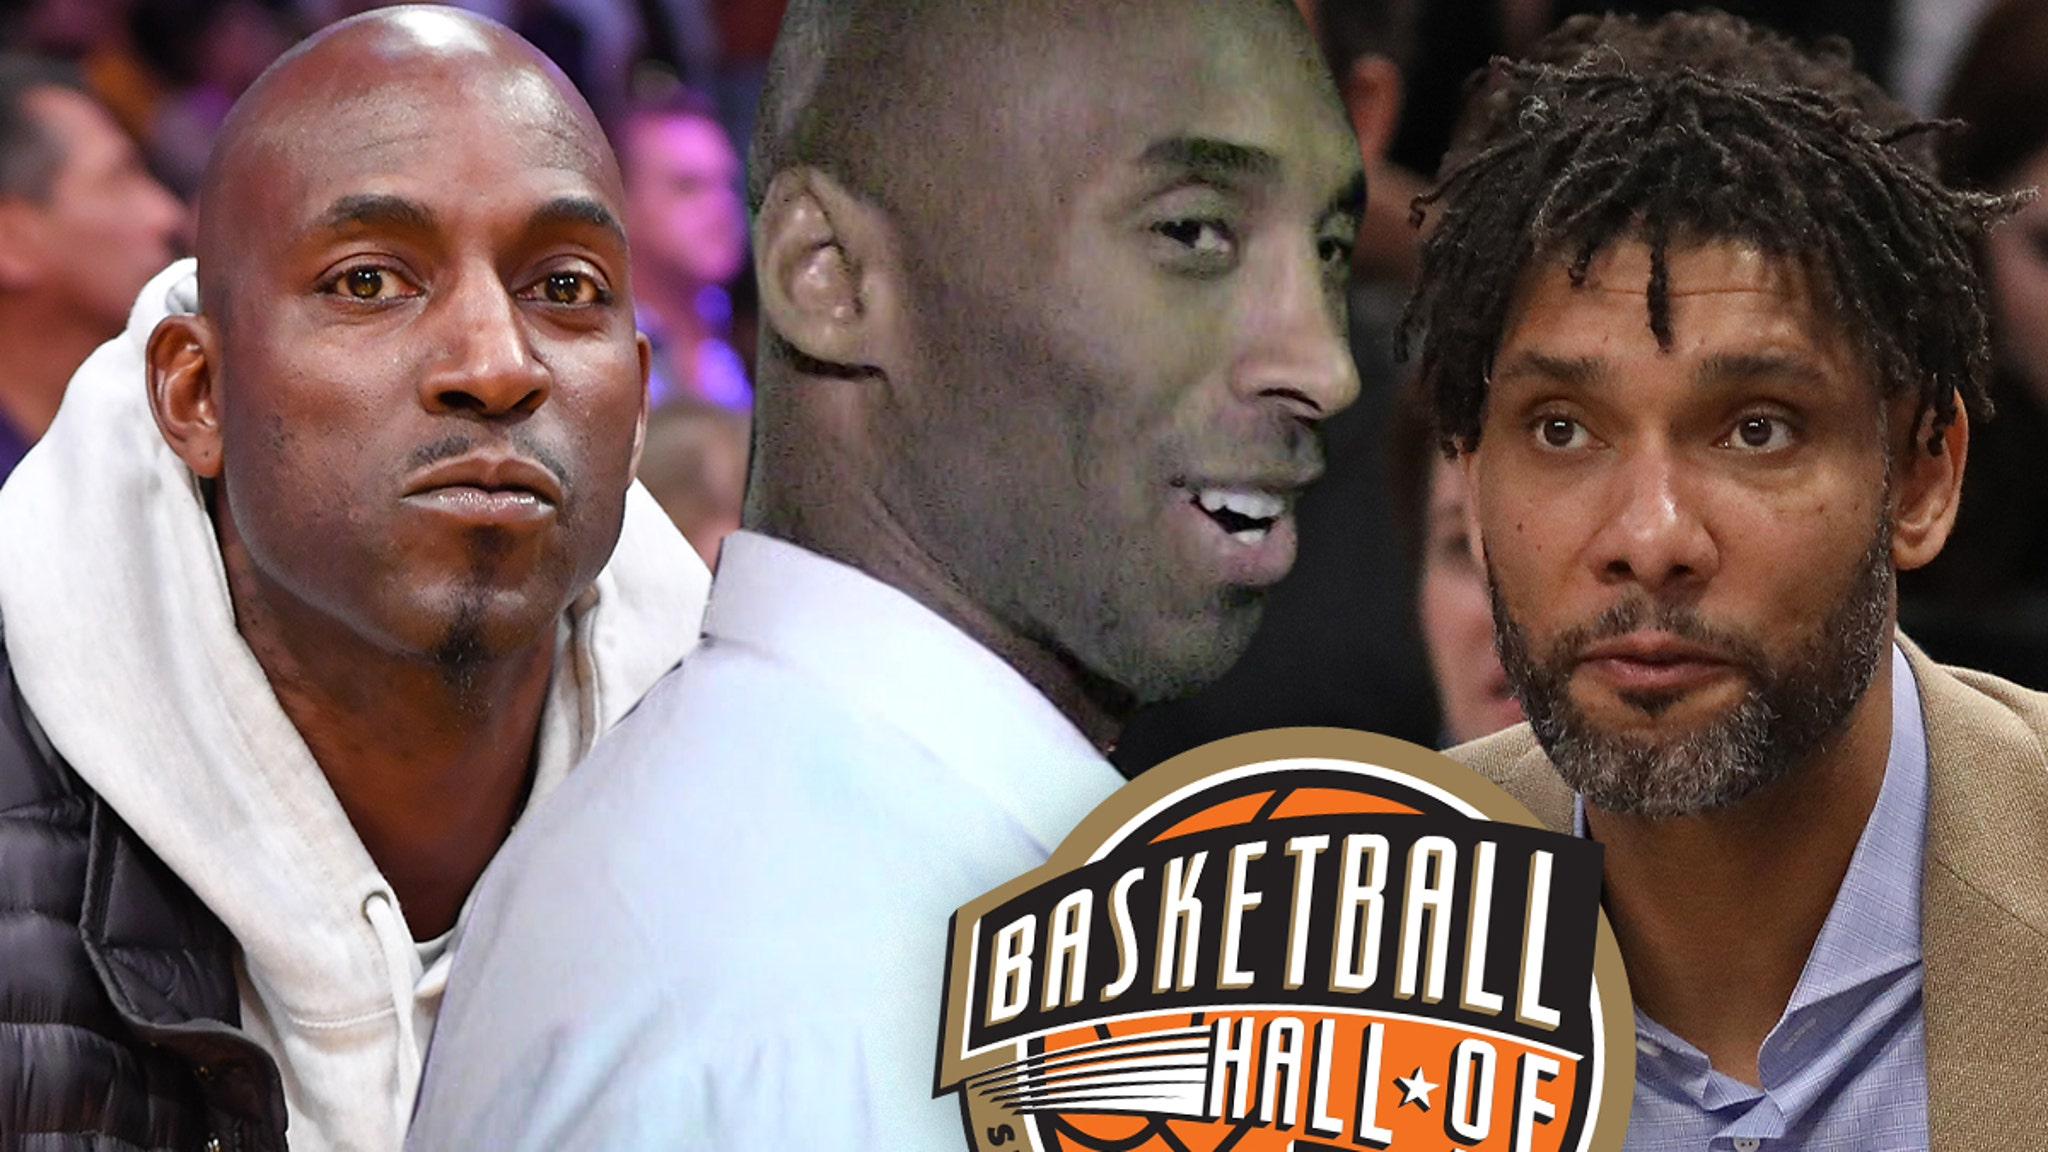 Kobe Bryant To Be Inducted Into Basketball Hall of Fame With KG, Tim Duncan